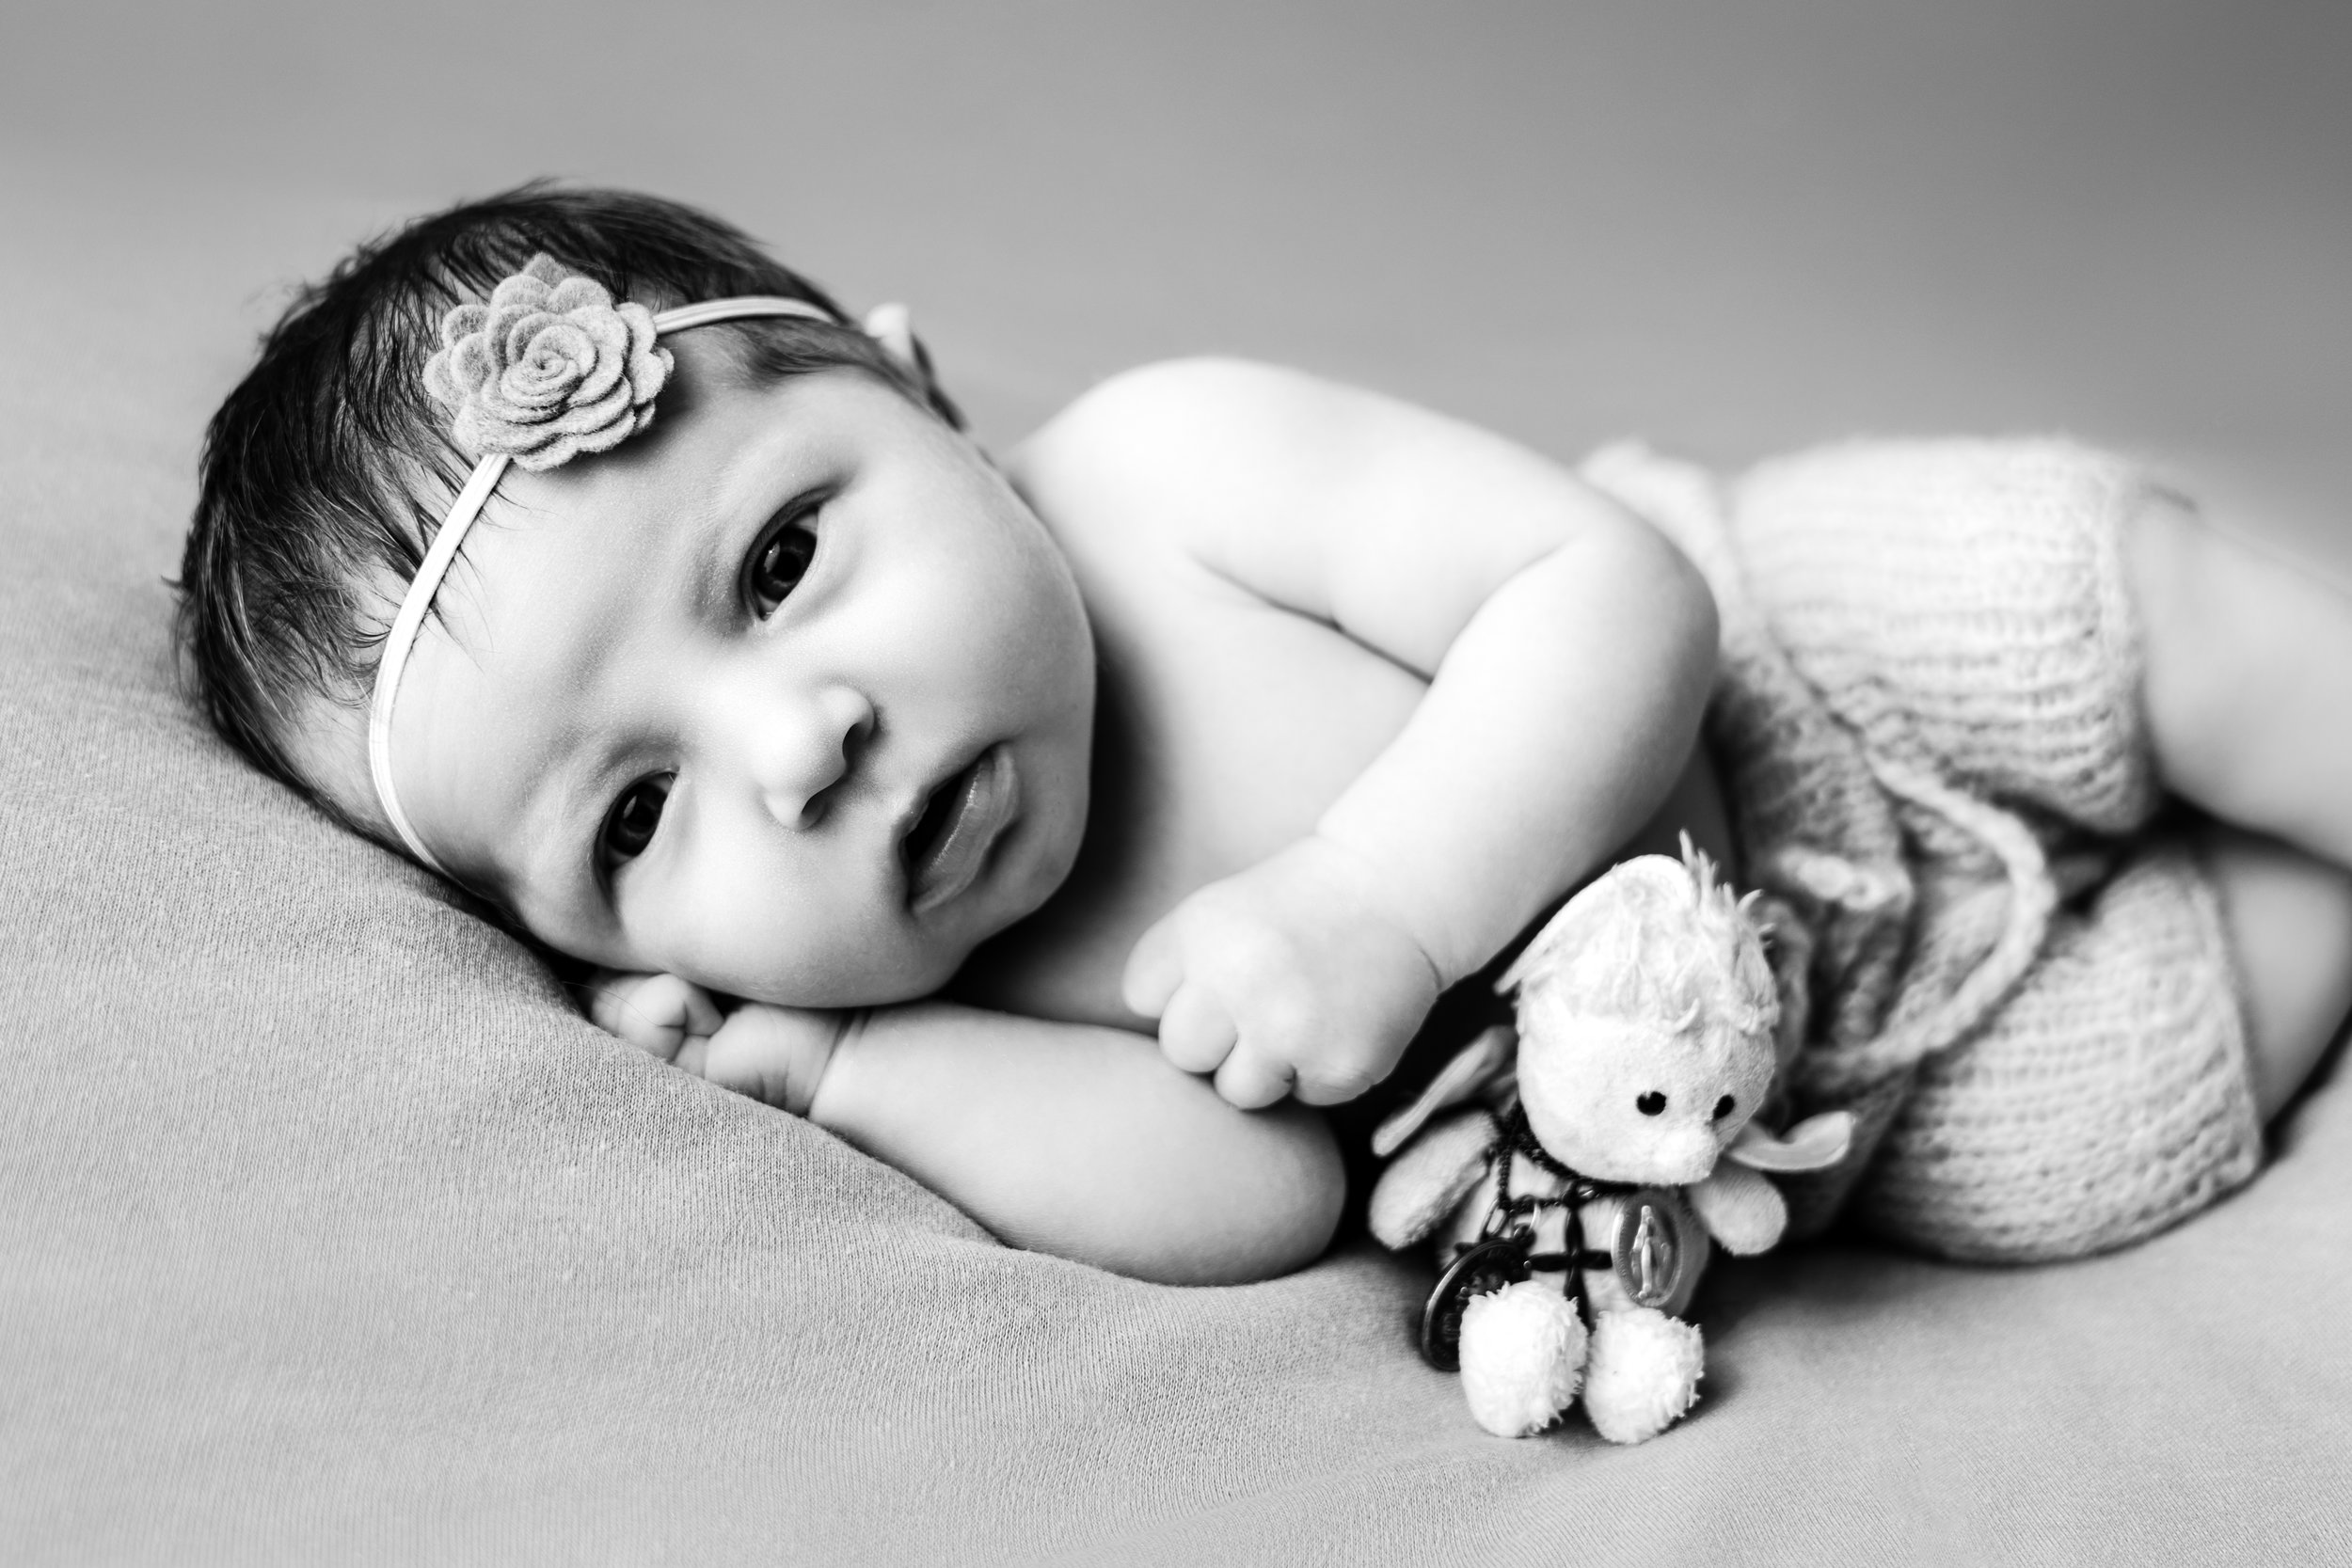 Phoenixnewbornshoot